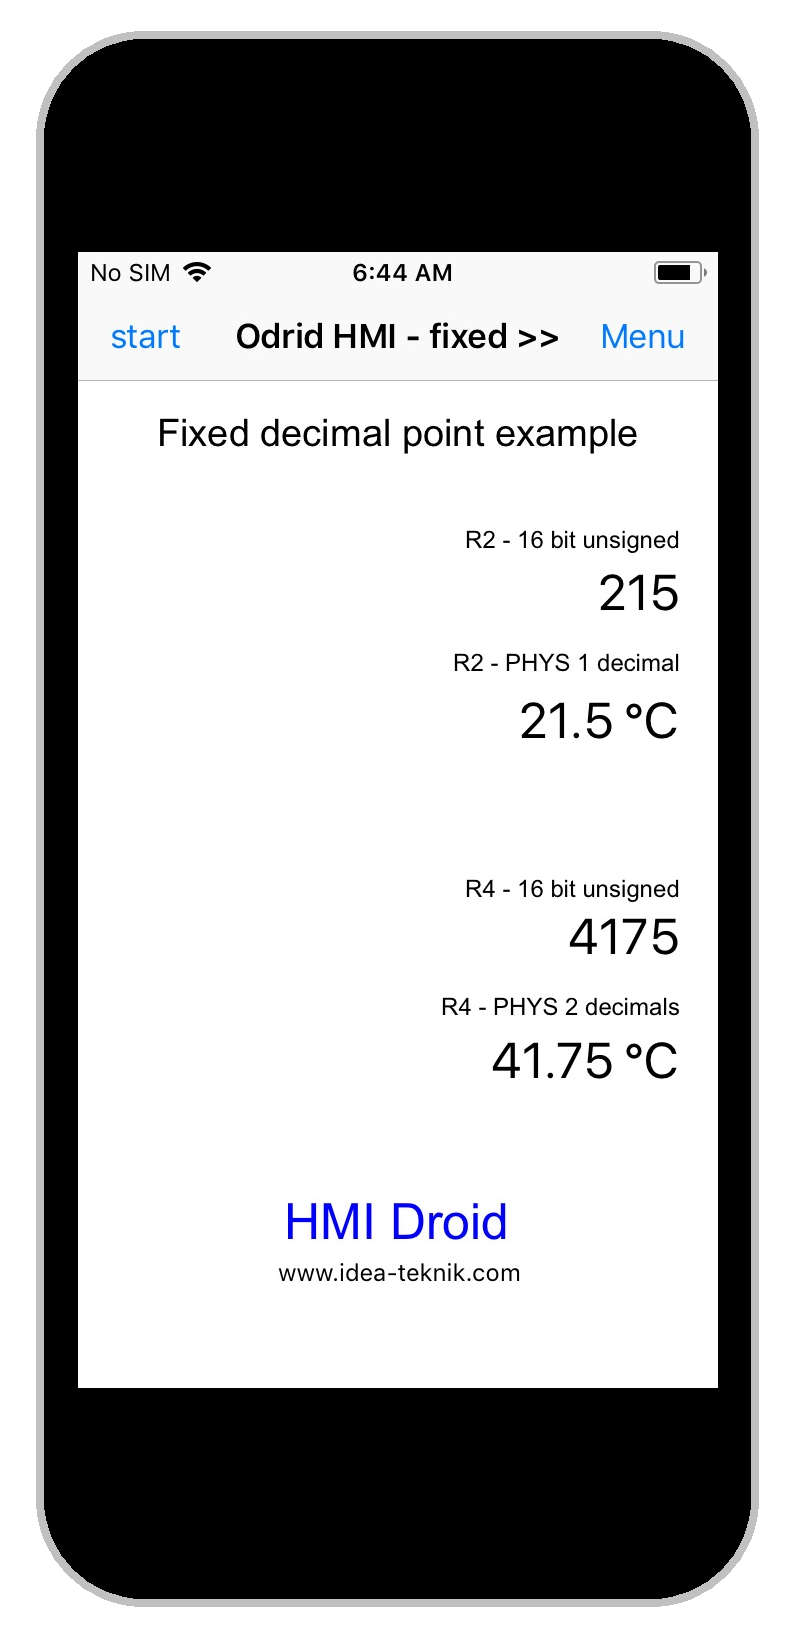 HMI Droid for iOS - fixed decinal point